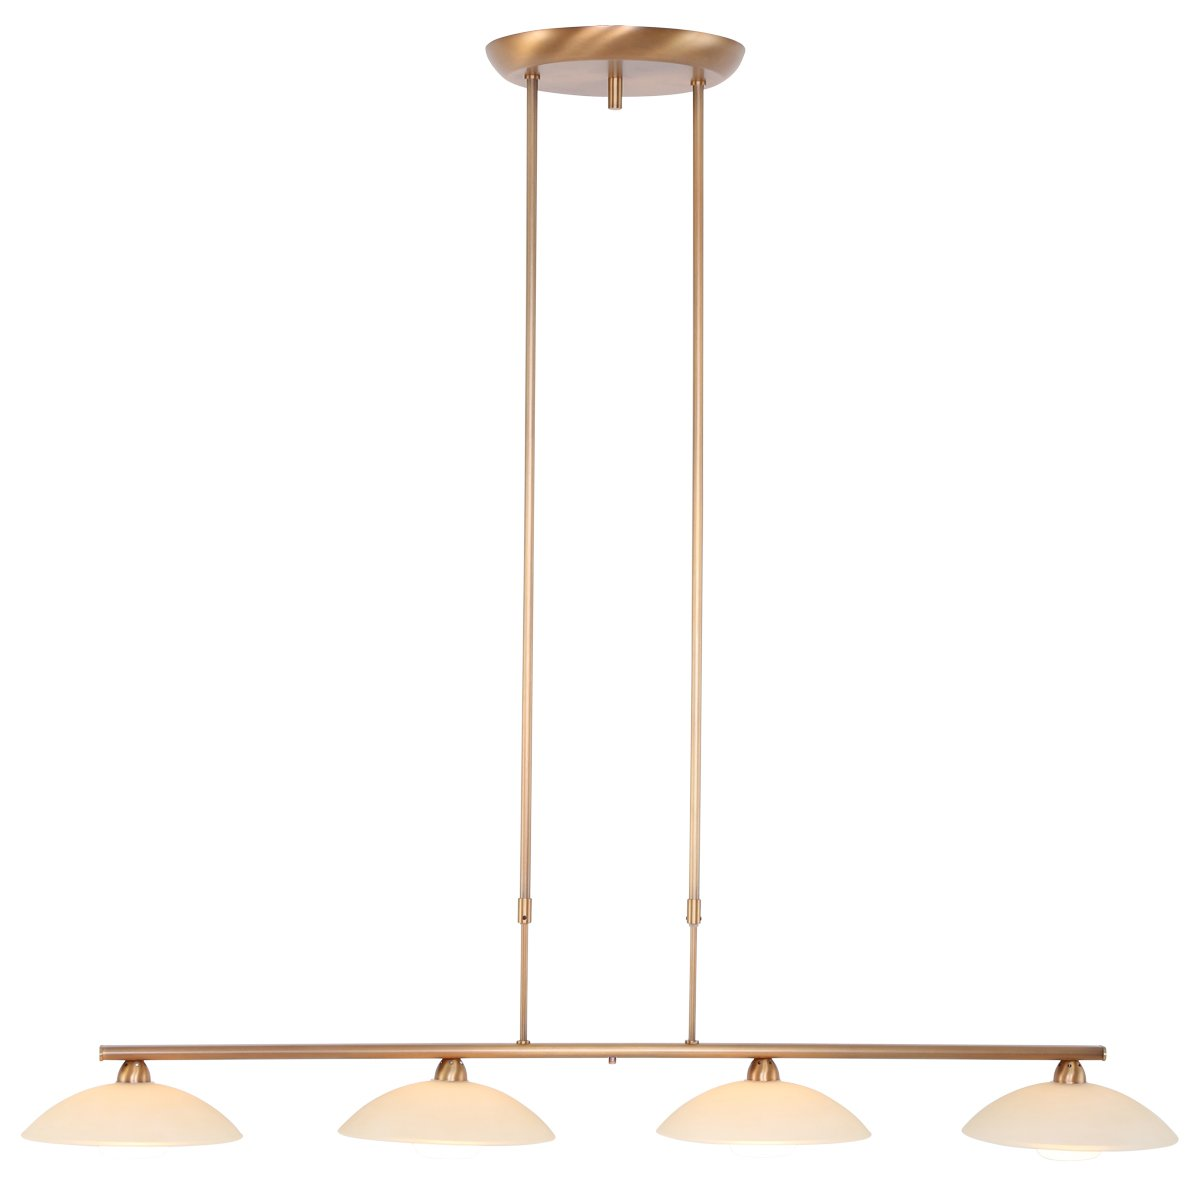 Hanglamp Steinhauer Sovereign Classic Led Brons 4Lichts